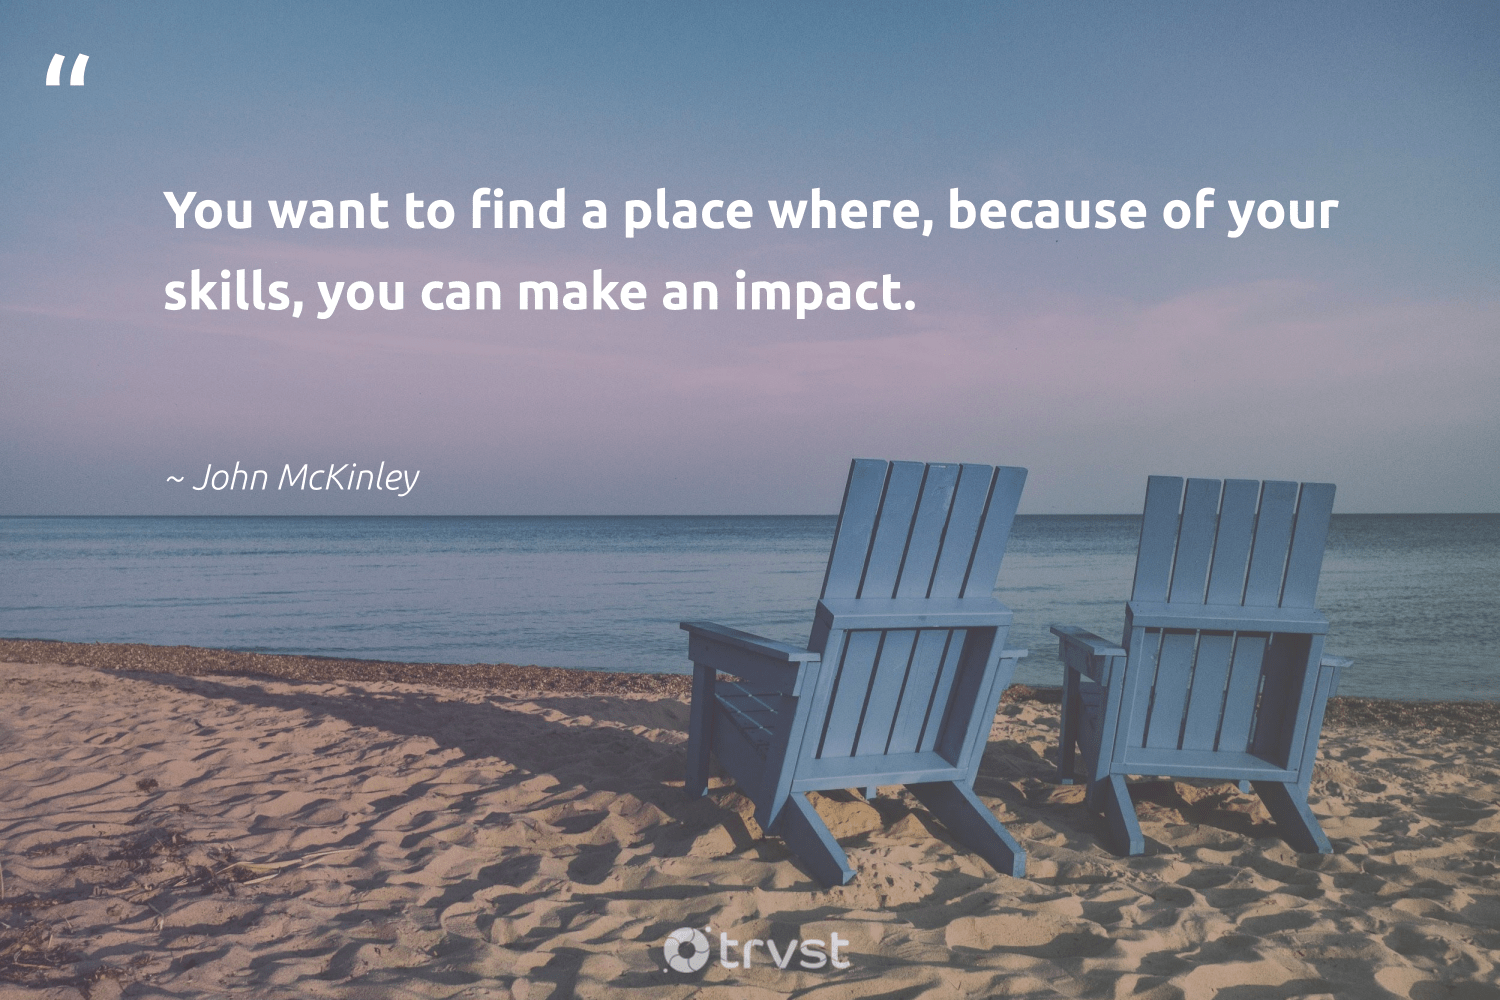 """You want to find a place where, because of your skills, you can make an impact.""  - John McKinley #trvst #quotes #impact #socialchange #ecoconscious #ethicalbusiness #dogood #giveback #takeaction #betterplanet #changetheworld #makeadifference"